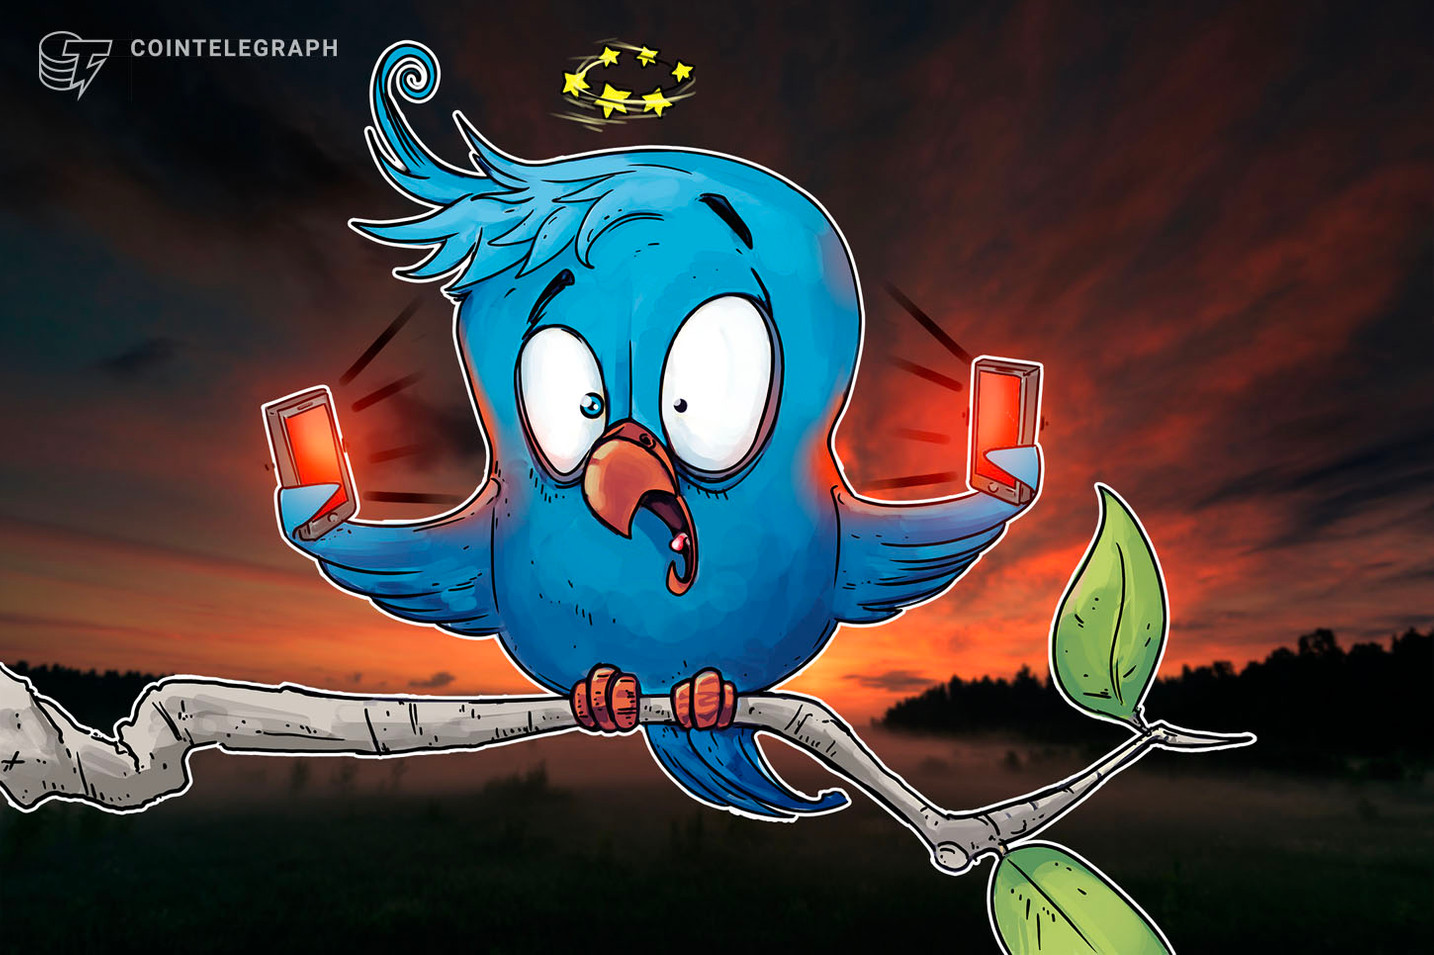 You won't believe the depths to which crypto scammers on Twitter are willing to sink